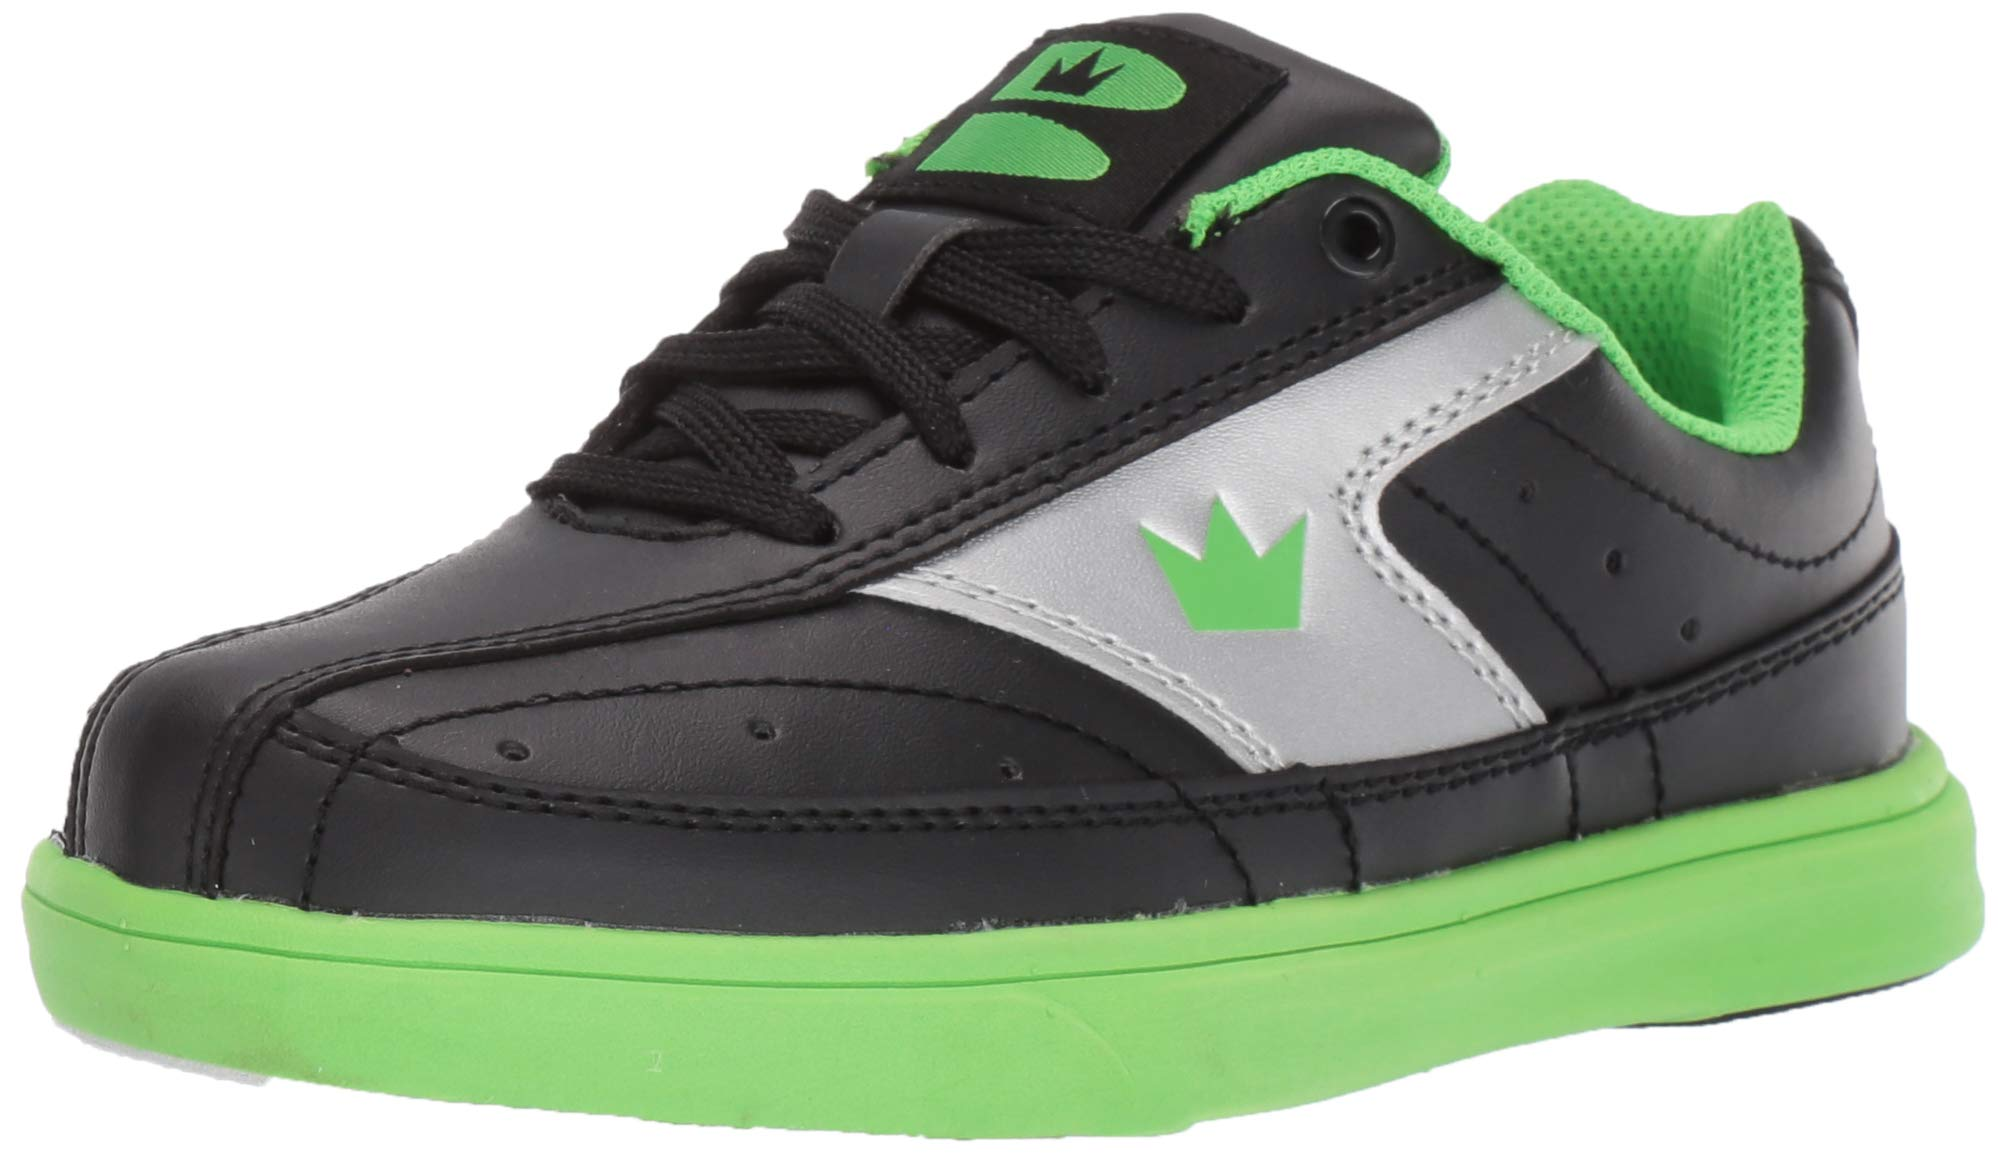 Brunswick Bowling Products Youth Renegade Bowling Shoes- 01 (Youth), Black/Neon Green, 1